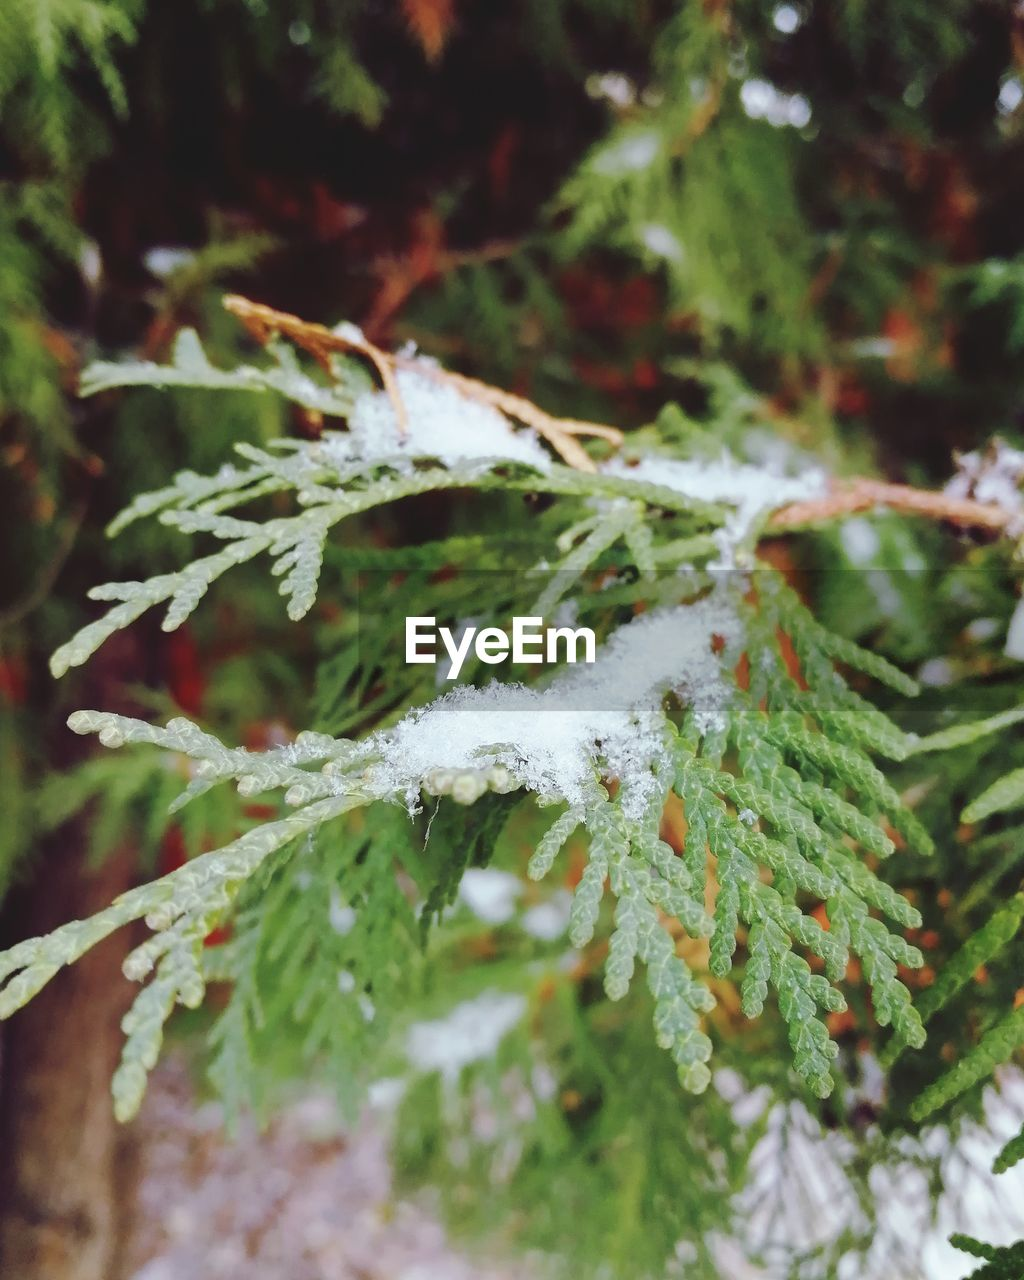 plant, winter, close-up, snow, cold temperature, day, beauty in nature, no people, green color, leaf, nature, plant part, frozen, focus on foreground, selective focus, outdoors, growth, ice, branch, leaves, coniferous tree